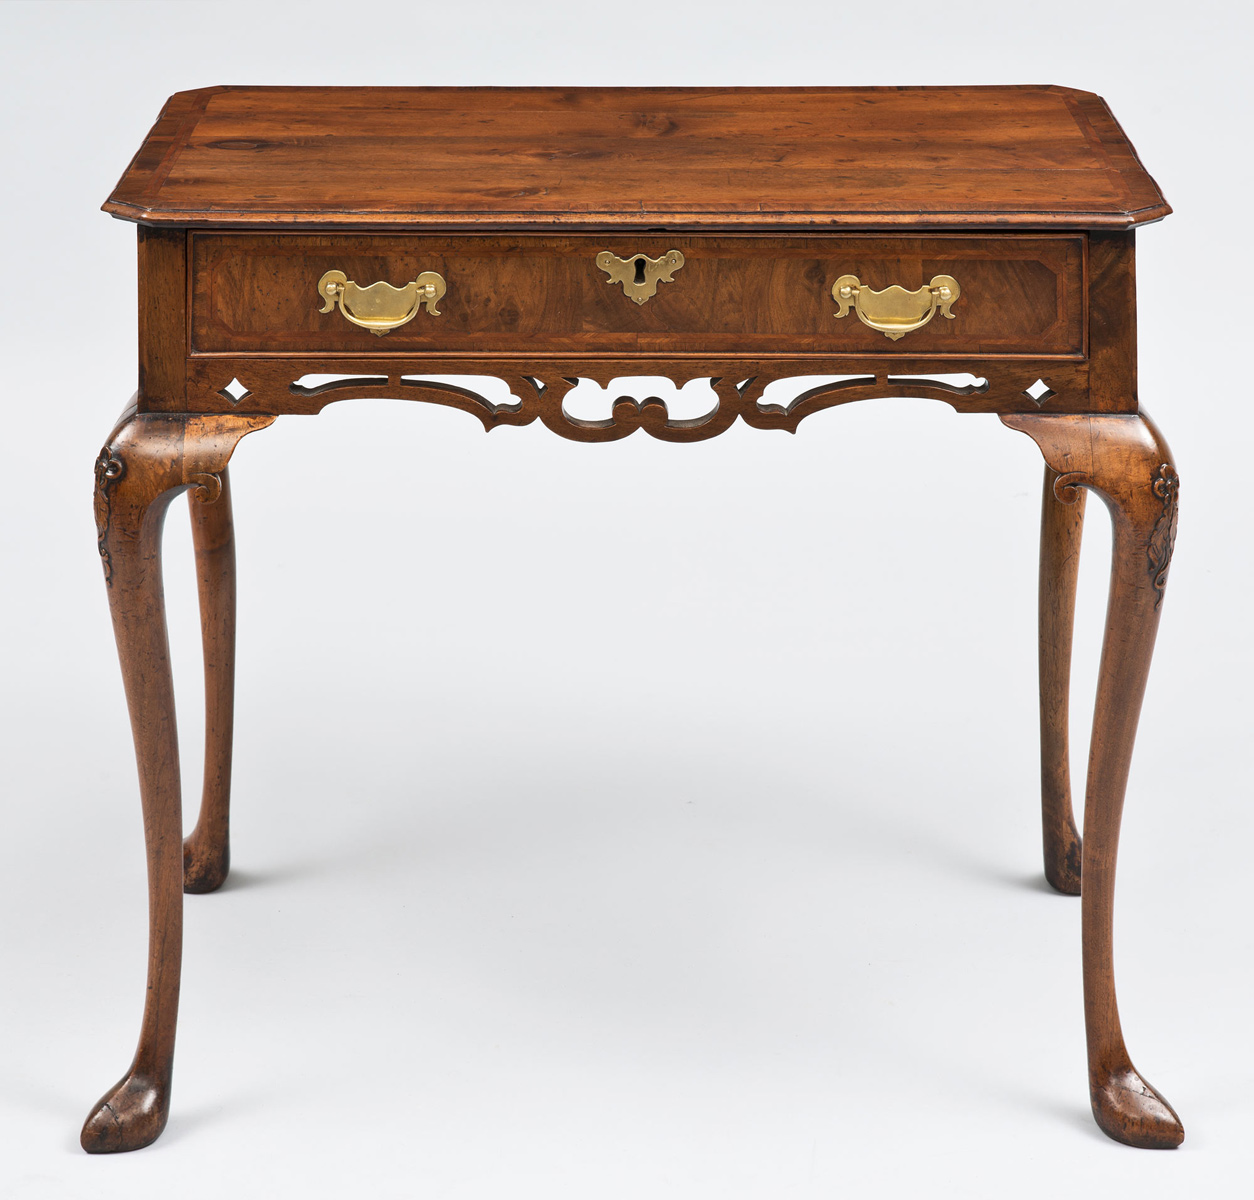 Queen Anne Walnut Side Table, Circa 1710 - Antique Side Tables Queen Anne Walnut Antique Side Table